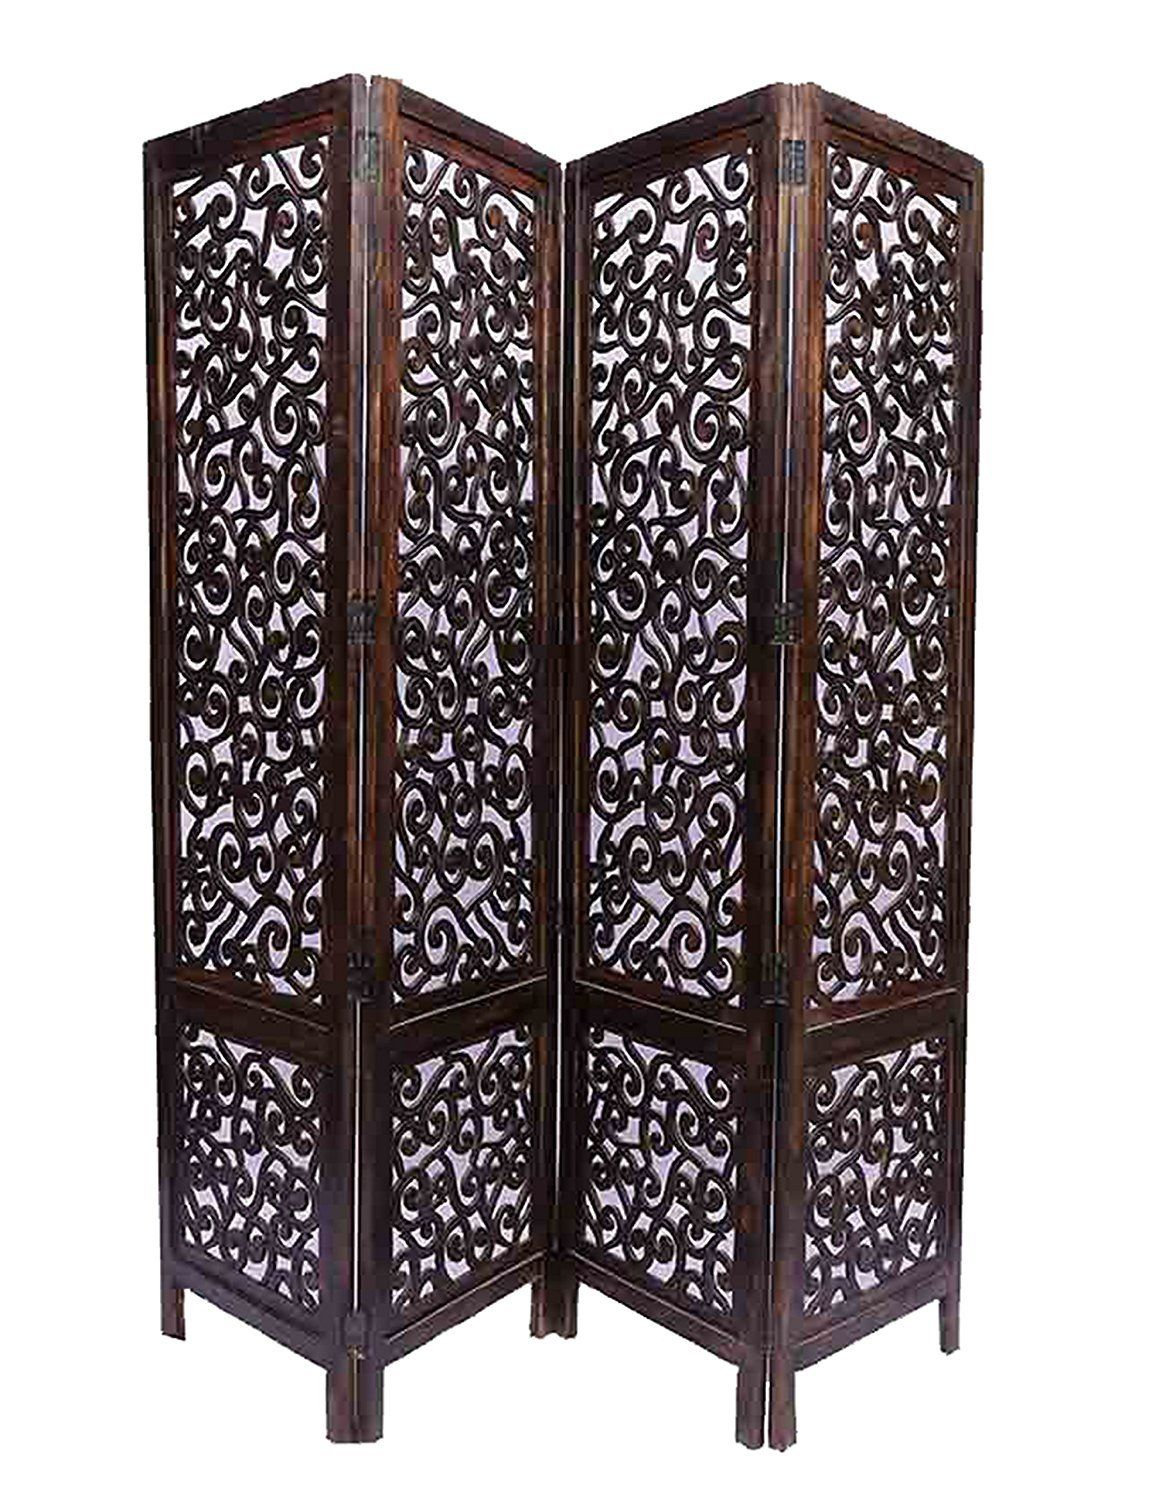 Buy Aarsun Mdf Wooden Partition Small Room Screen Room Divider Room Separator Online At Low Prices In India On Wooden Partitions Room Divider Room Screen